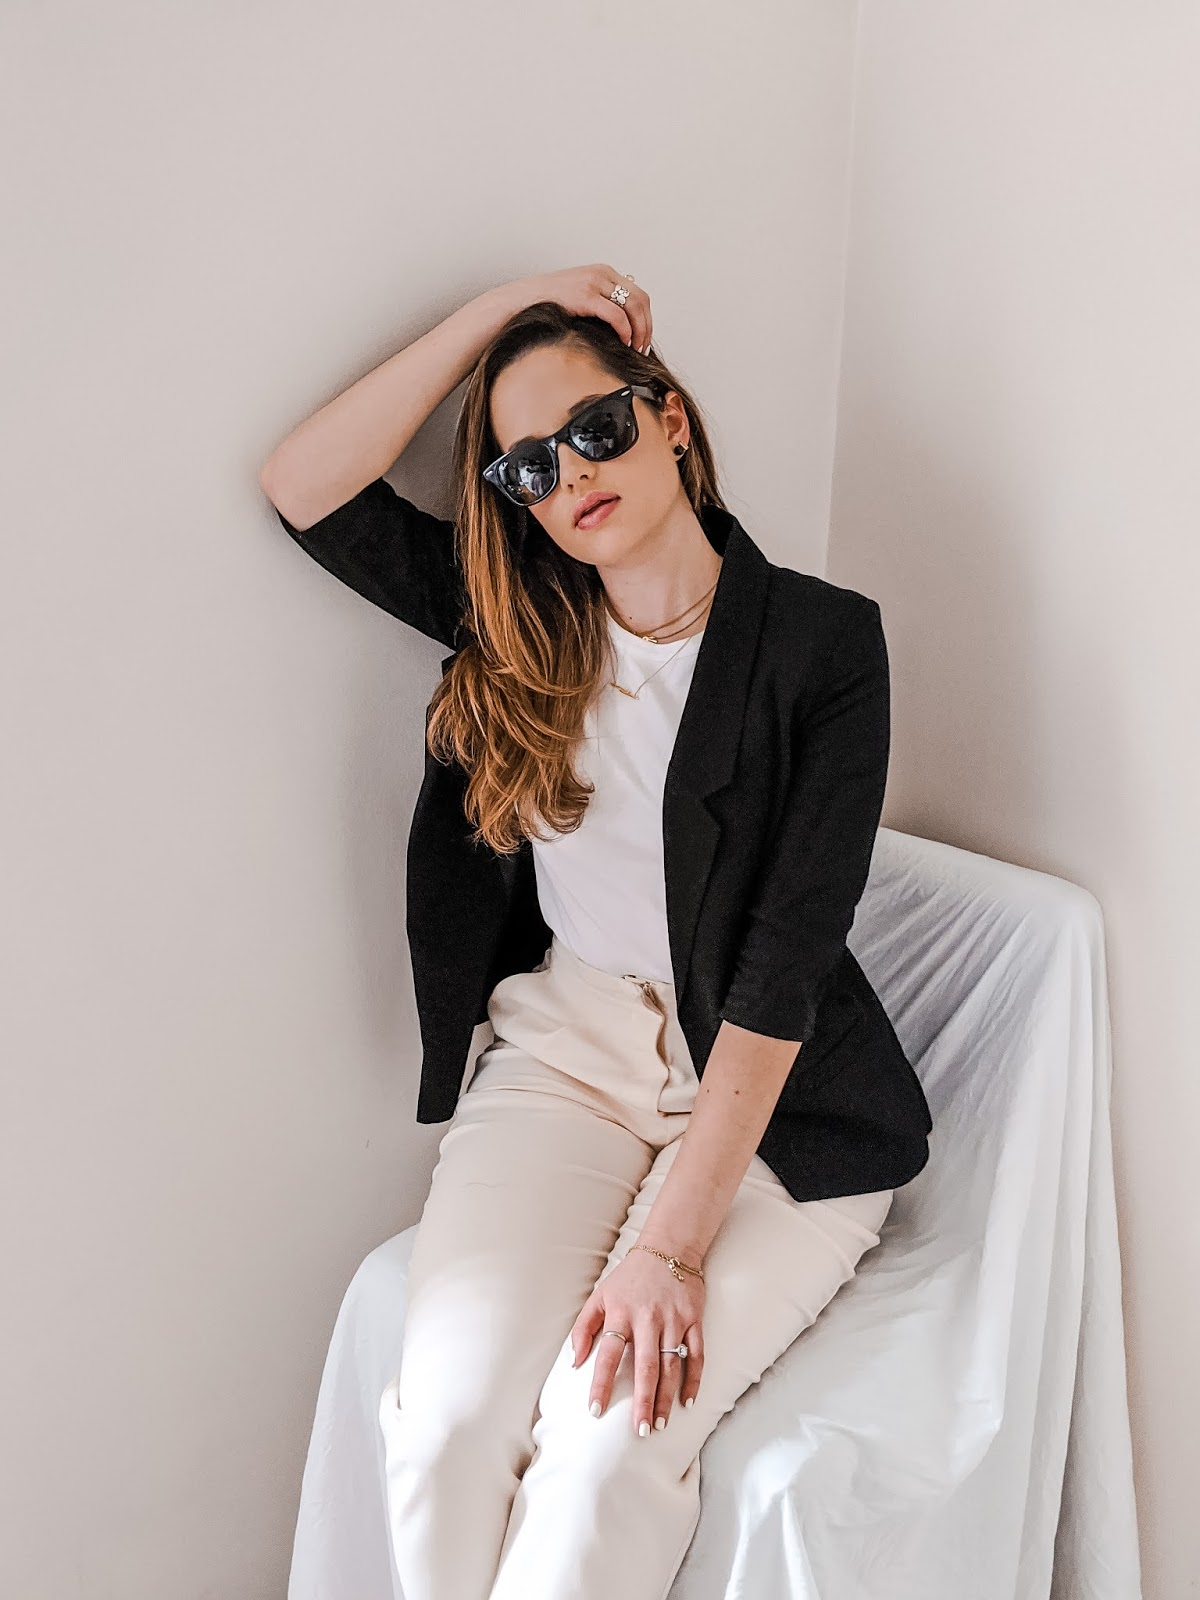 Nyc fashion blogger Kathleen Harper wearing a neutral spring outfit.